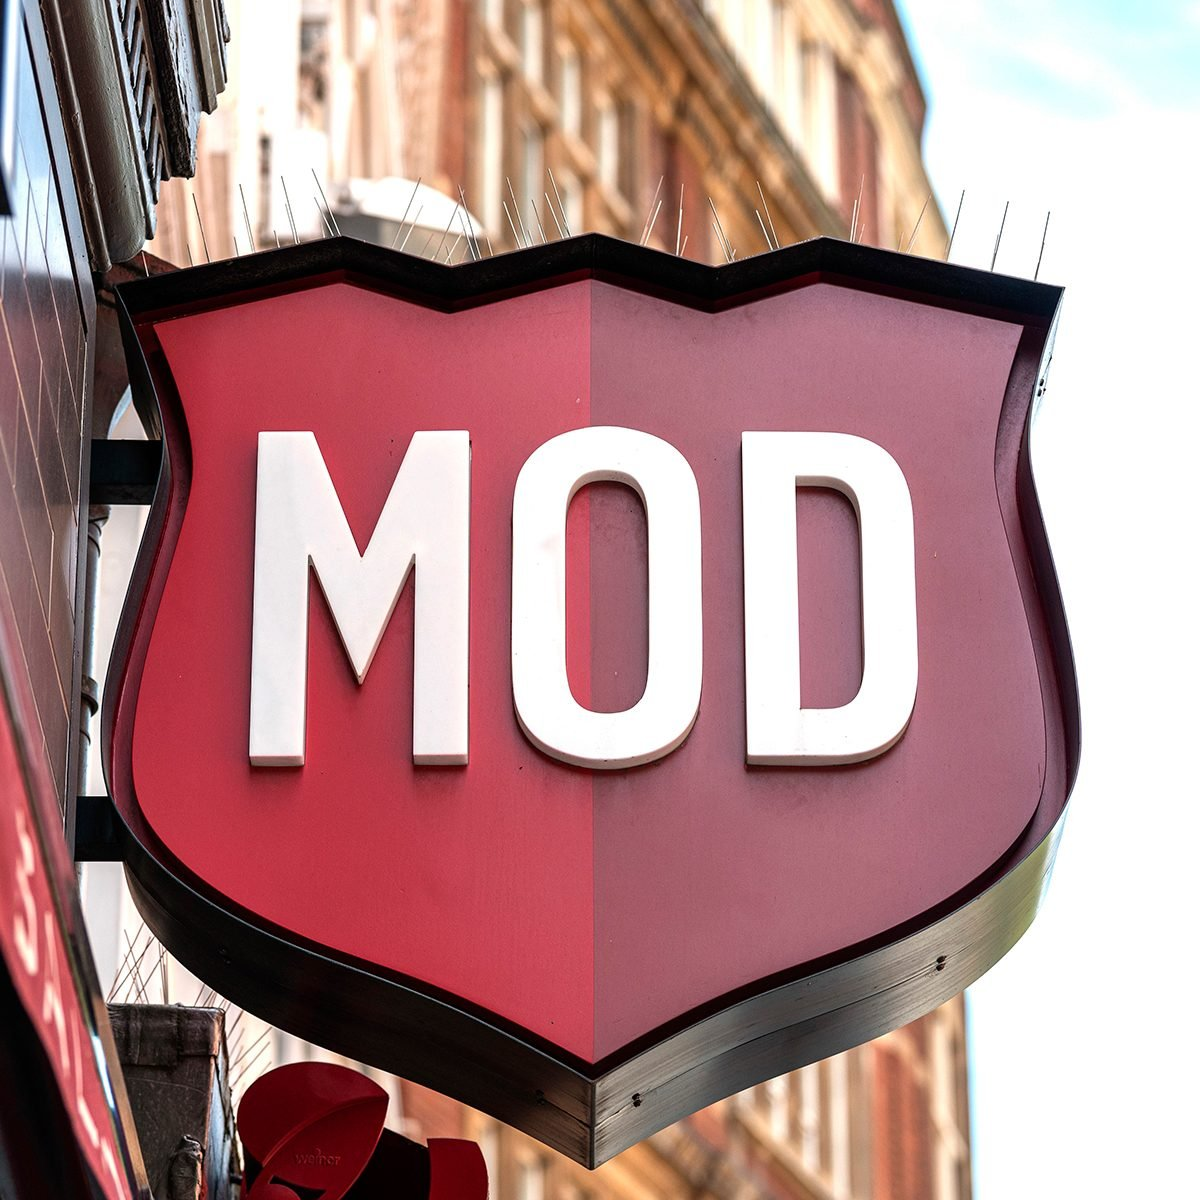 LONDON, UNITED KINGDOM - 2020/06/02: MOD Pizza logo on their restaurant in Leicester Square. (Photo by Dave Rushen/SOPA Images/LightRocket via Getty Images)